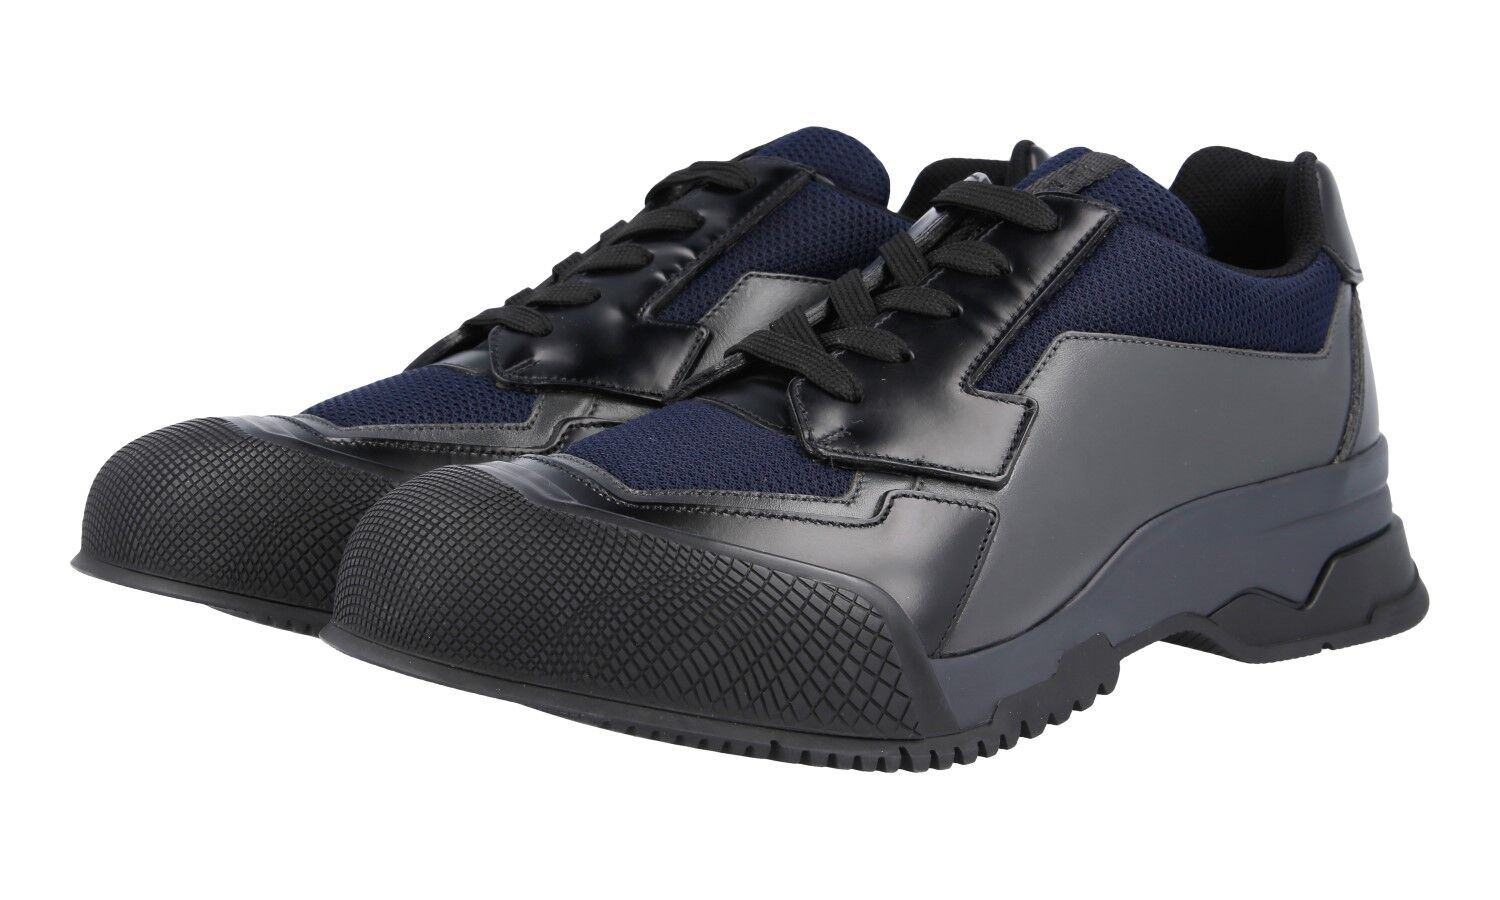 AUTH LUXURY PRADA SNEAKERS SHOES 4E2748 BLACK blueE NEW US 8 EU 41 41,5